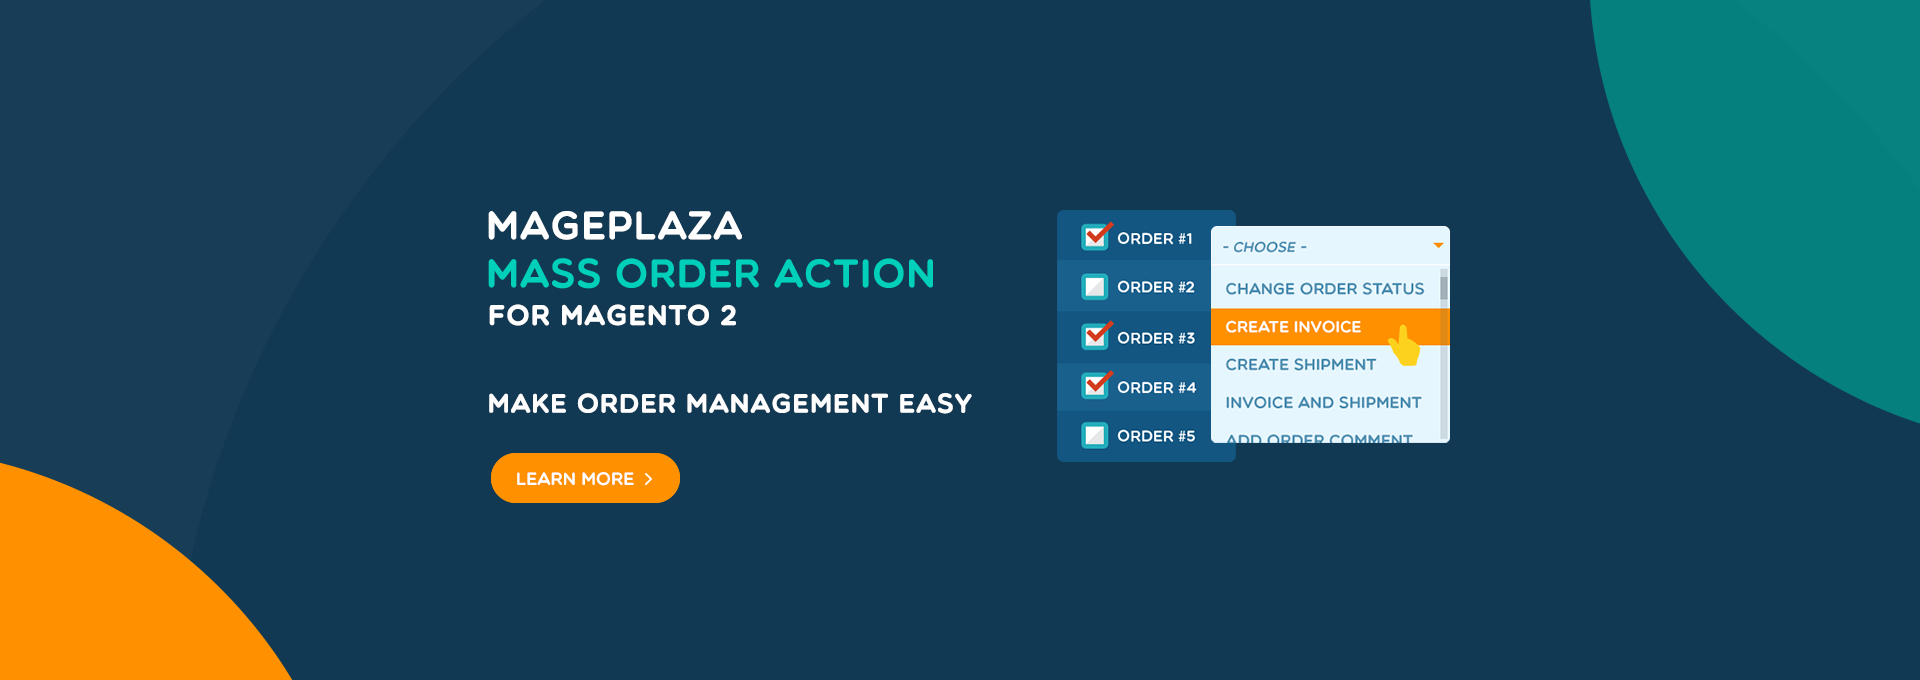 How to perform Mass Order Actions with a few clicks